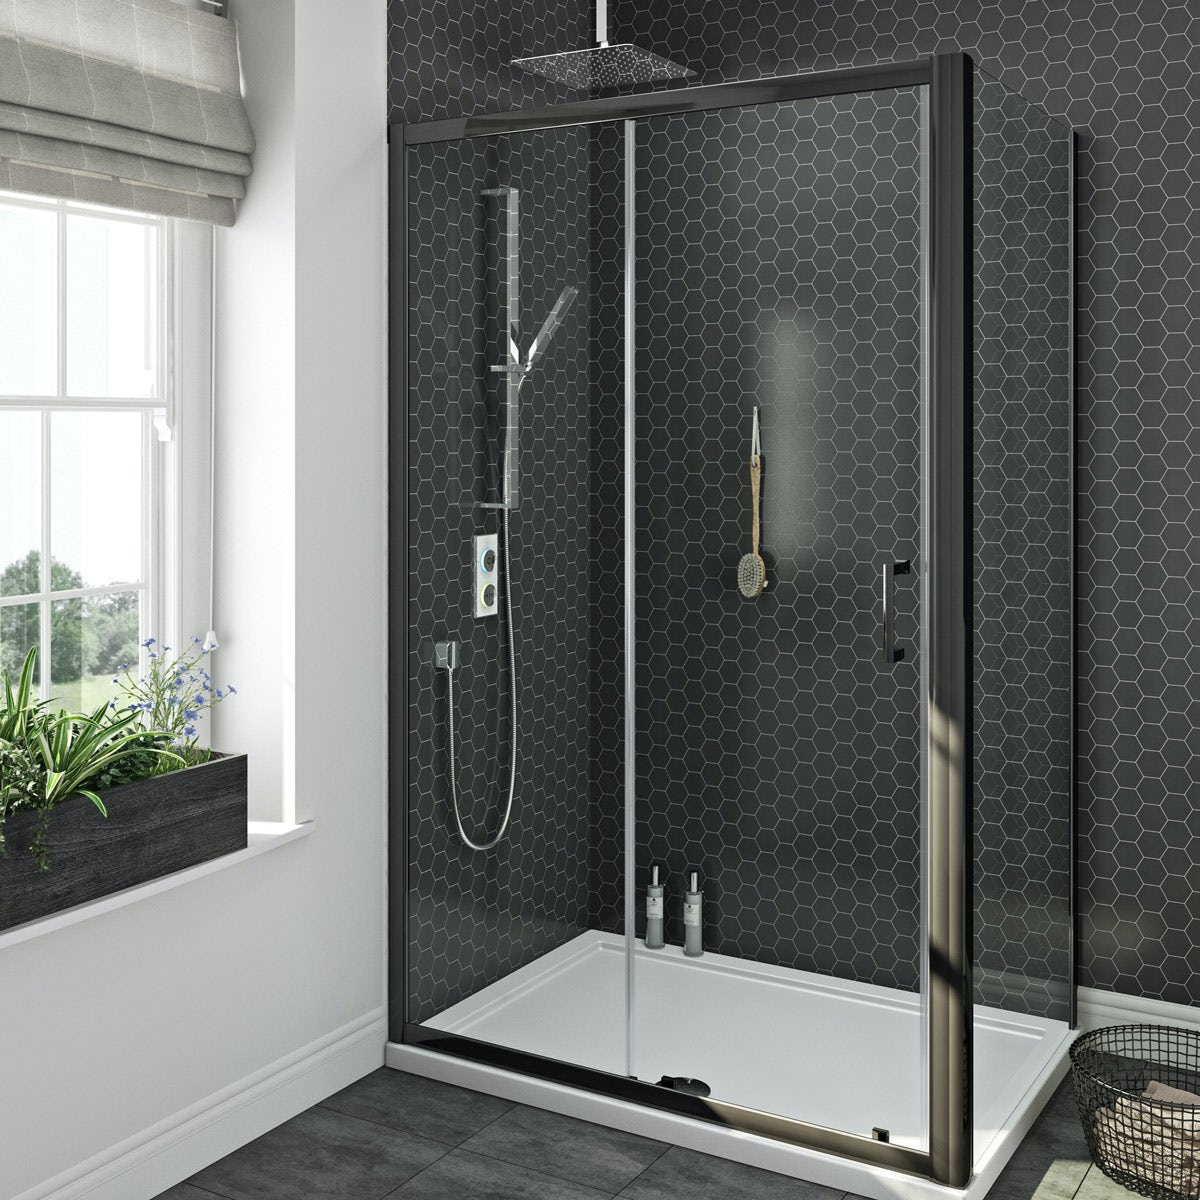 Smartap White Smart Shower System With Mode Black Shower Enclosure 1200 X 800 Victoriaplum Com